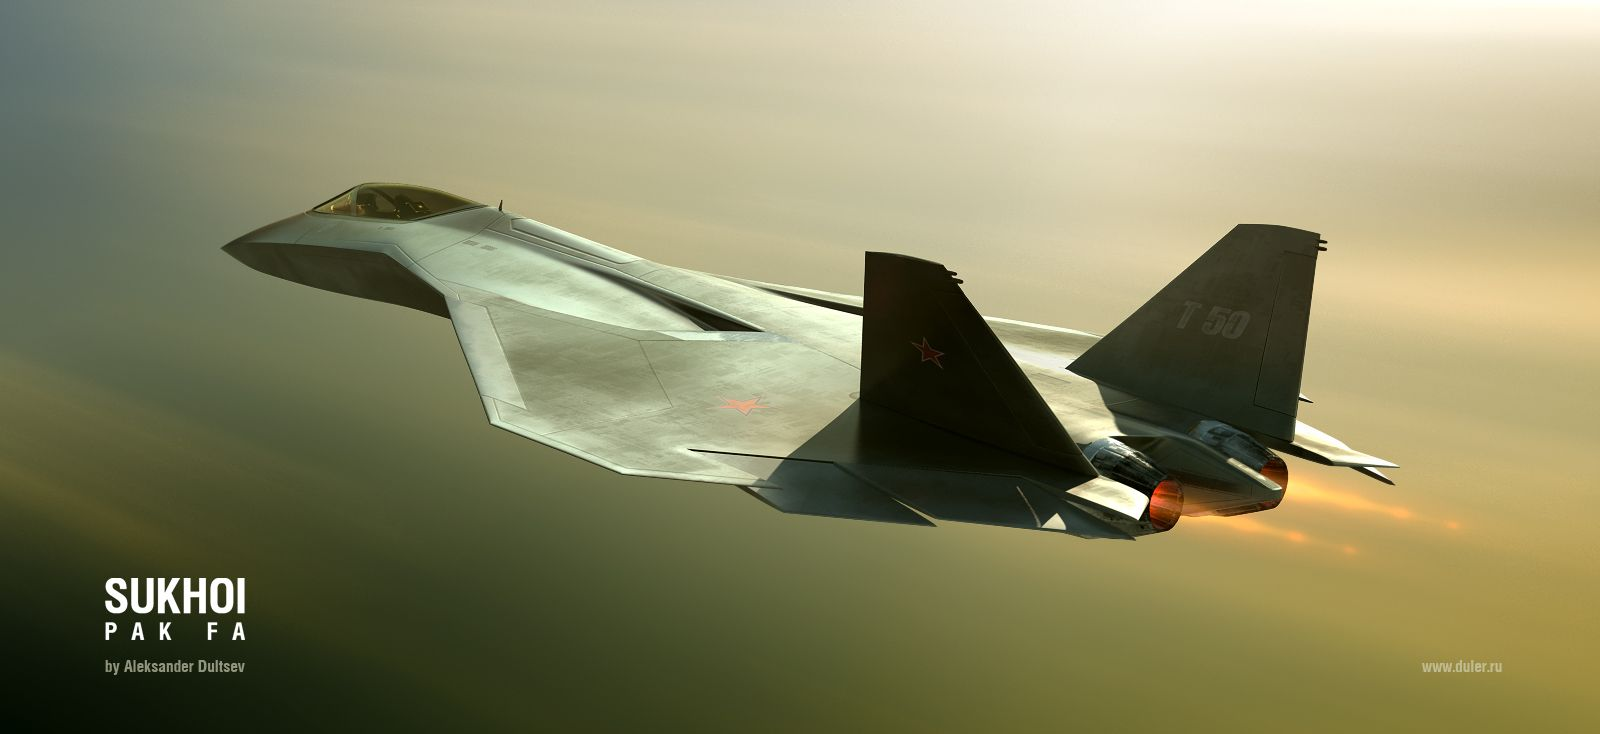 50 sukhoi t 50 pak fa wallpapers hd desktop and mobile backgrounds - Fighter Jets